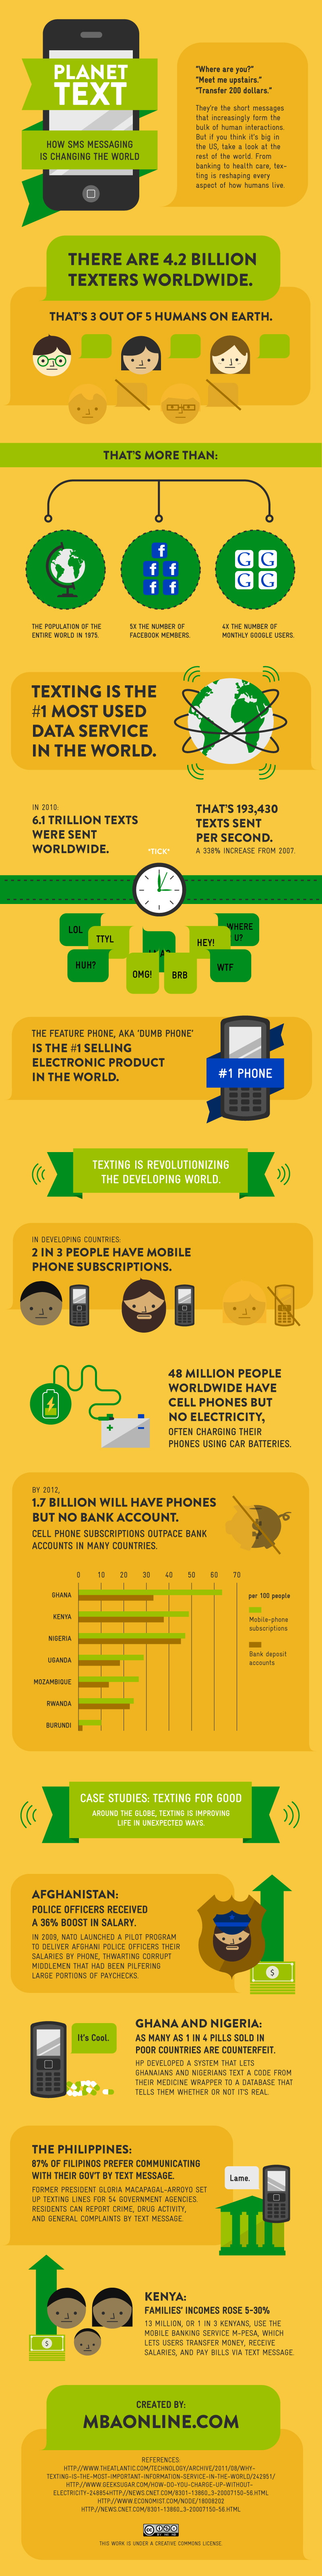 How Texting is Changing the World